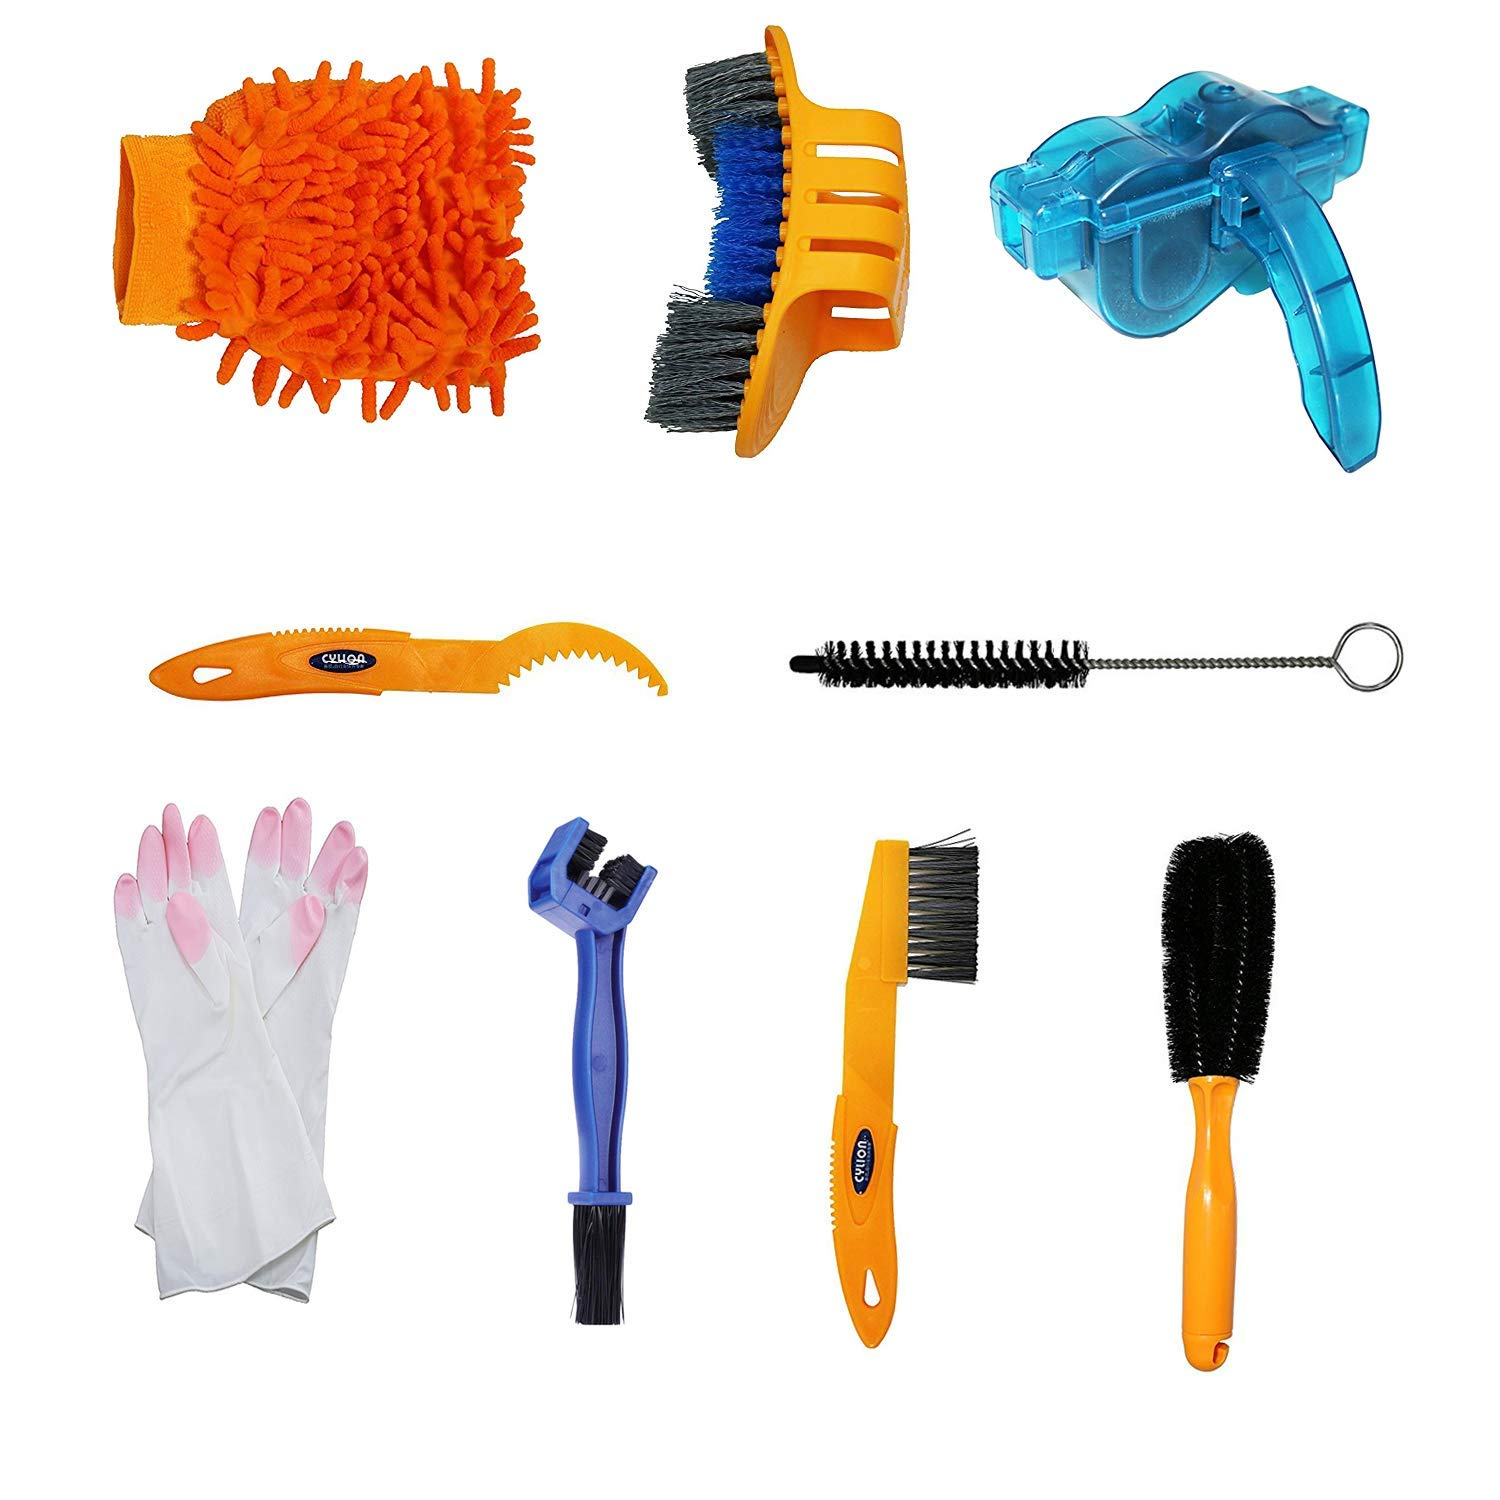 Rodway Bicycle Cleaning Tool Kits Bike Chain Cleaner Tool Wheel Cleaner Brush Compact Multipurpose Practical for Mountain, Road, City, Hybrid,BMX Bike and Folding Bike